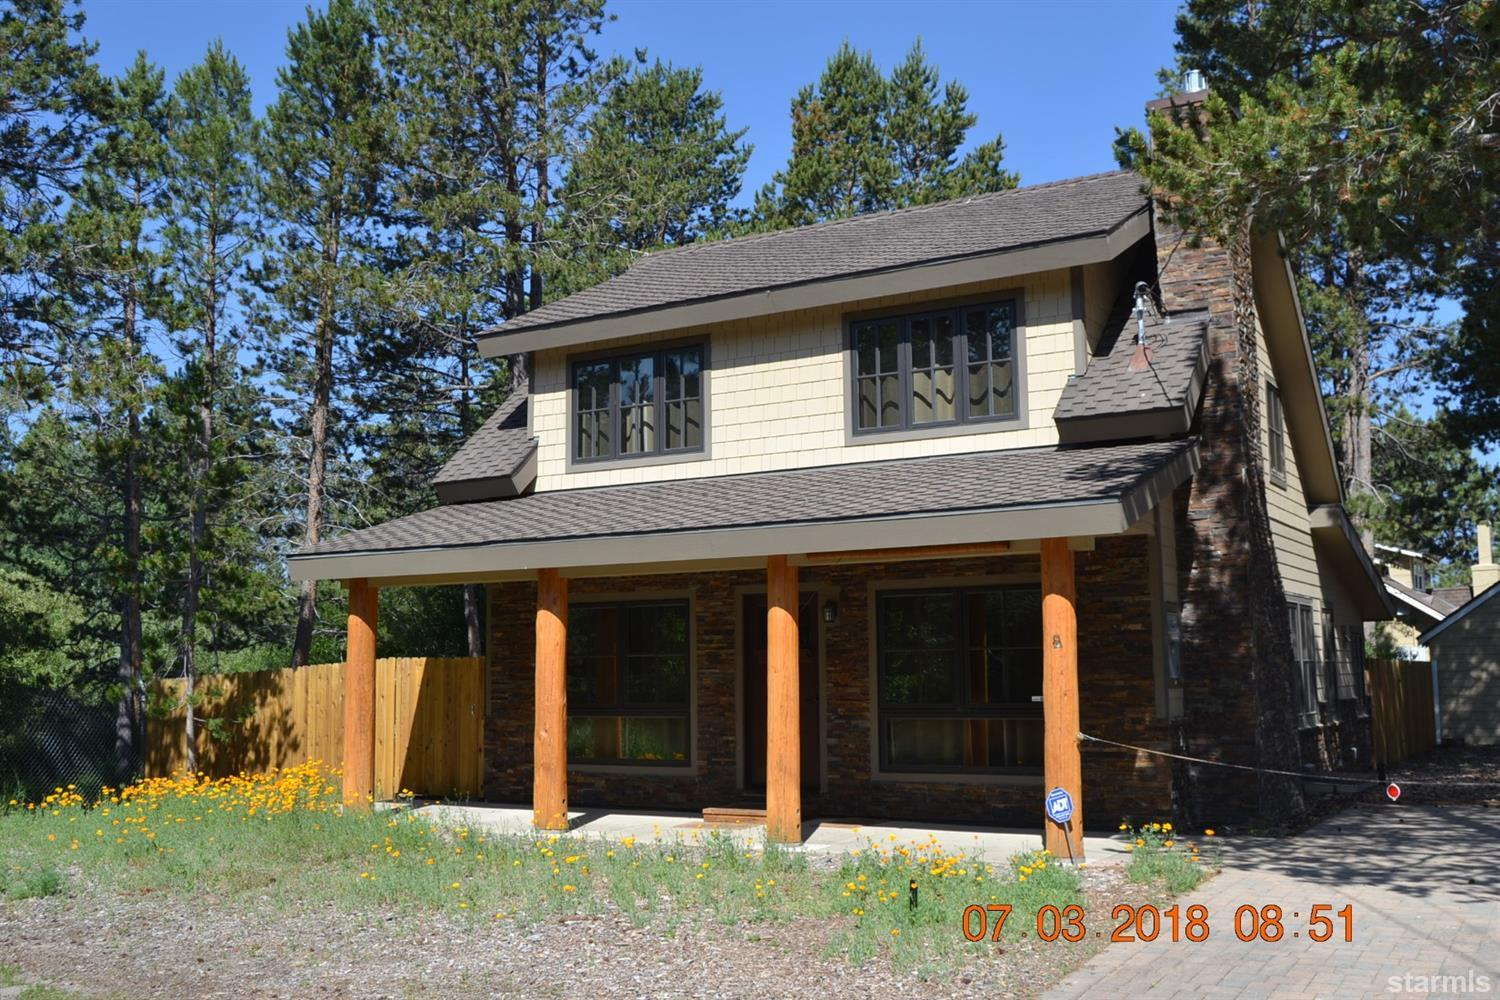 Meadow Road, SOUTH LAKE TAHOE, CA 96150